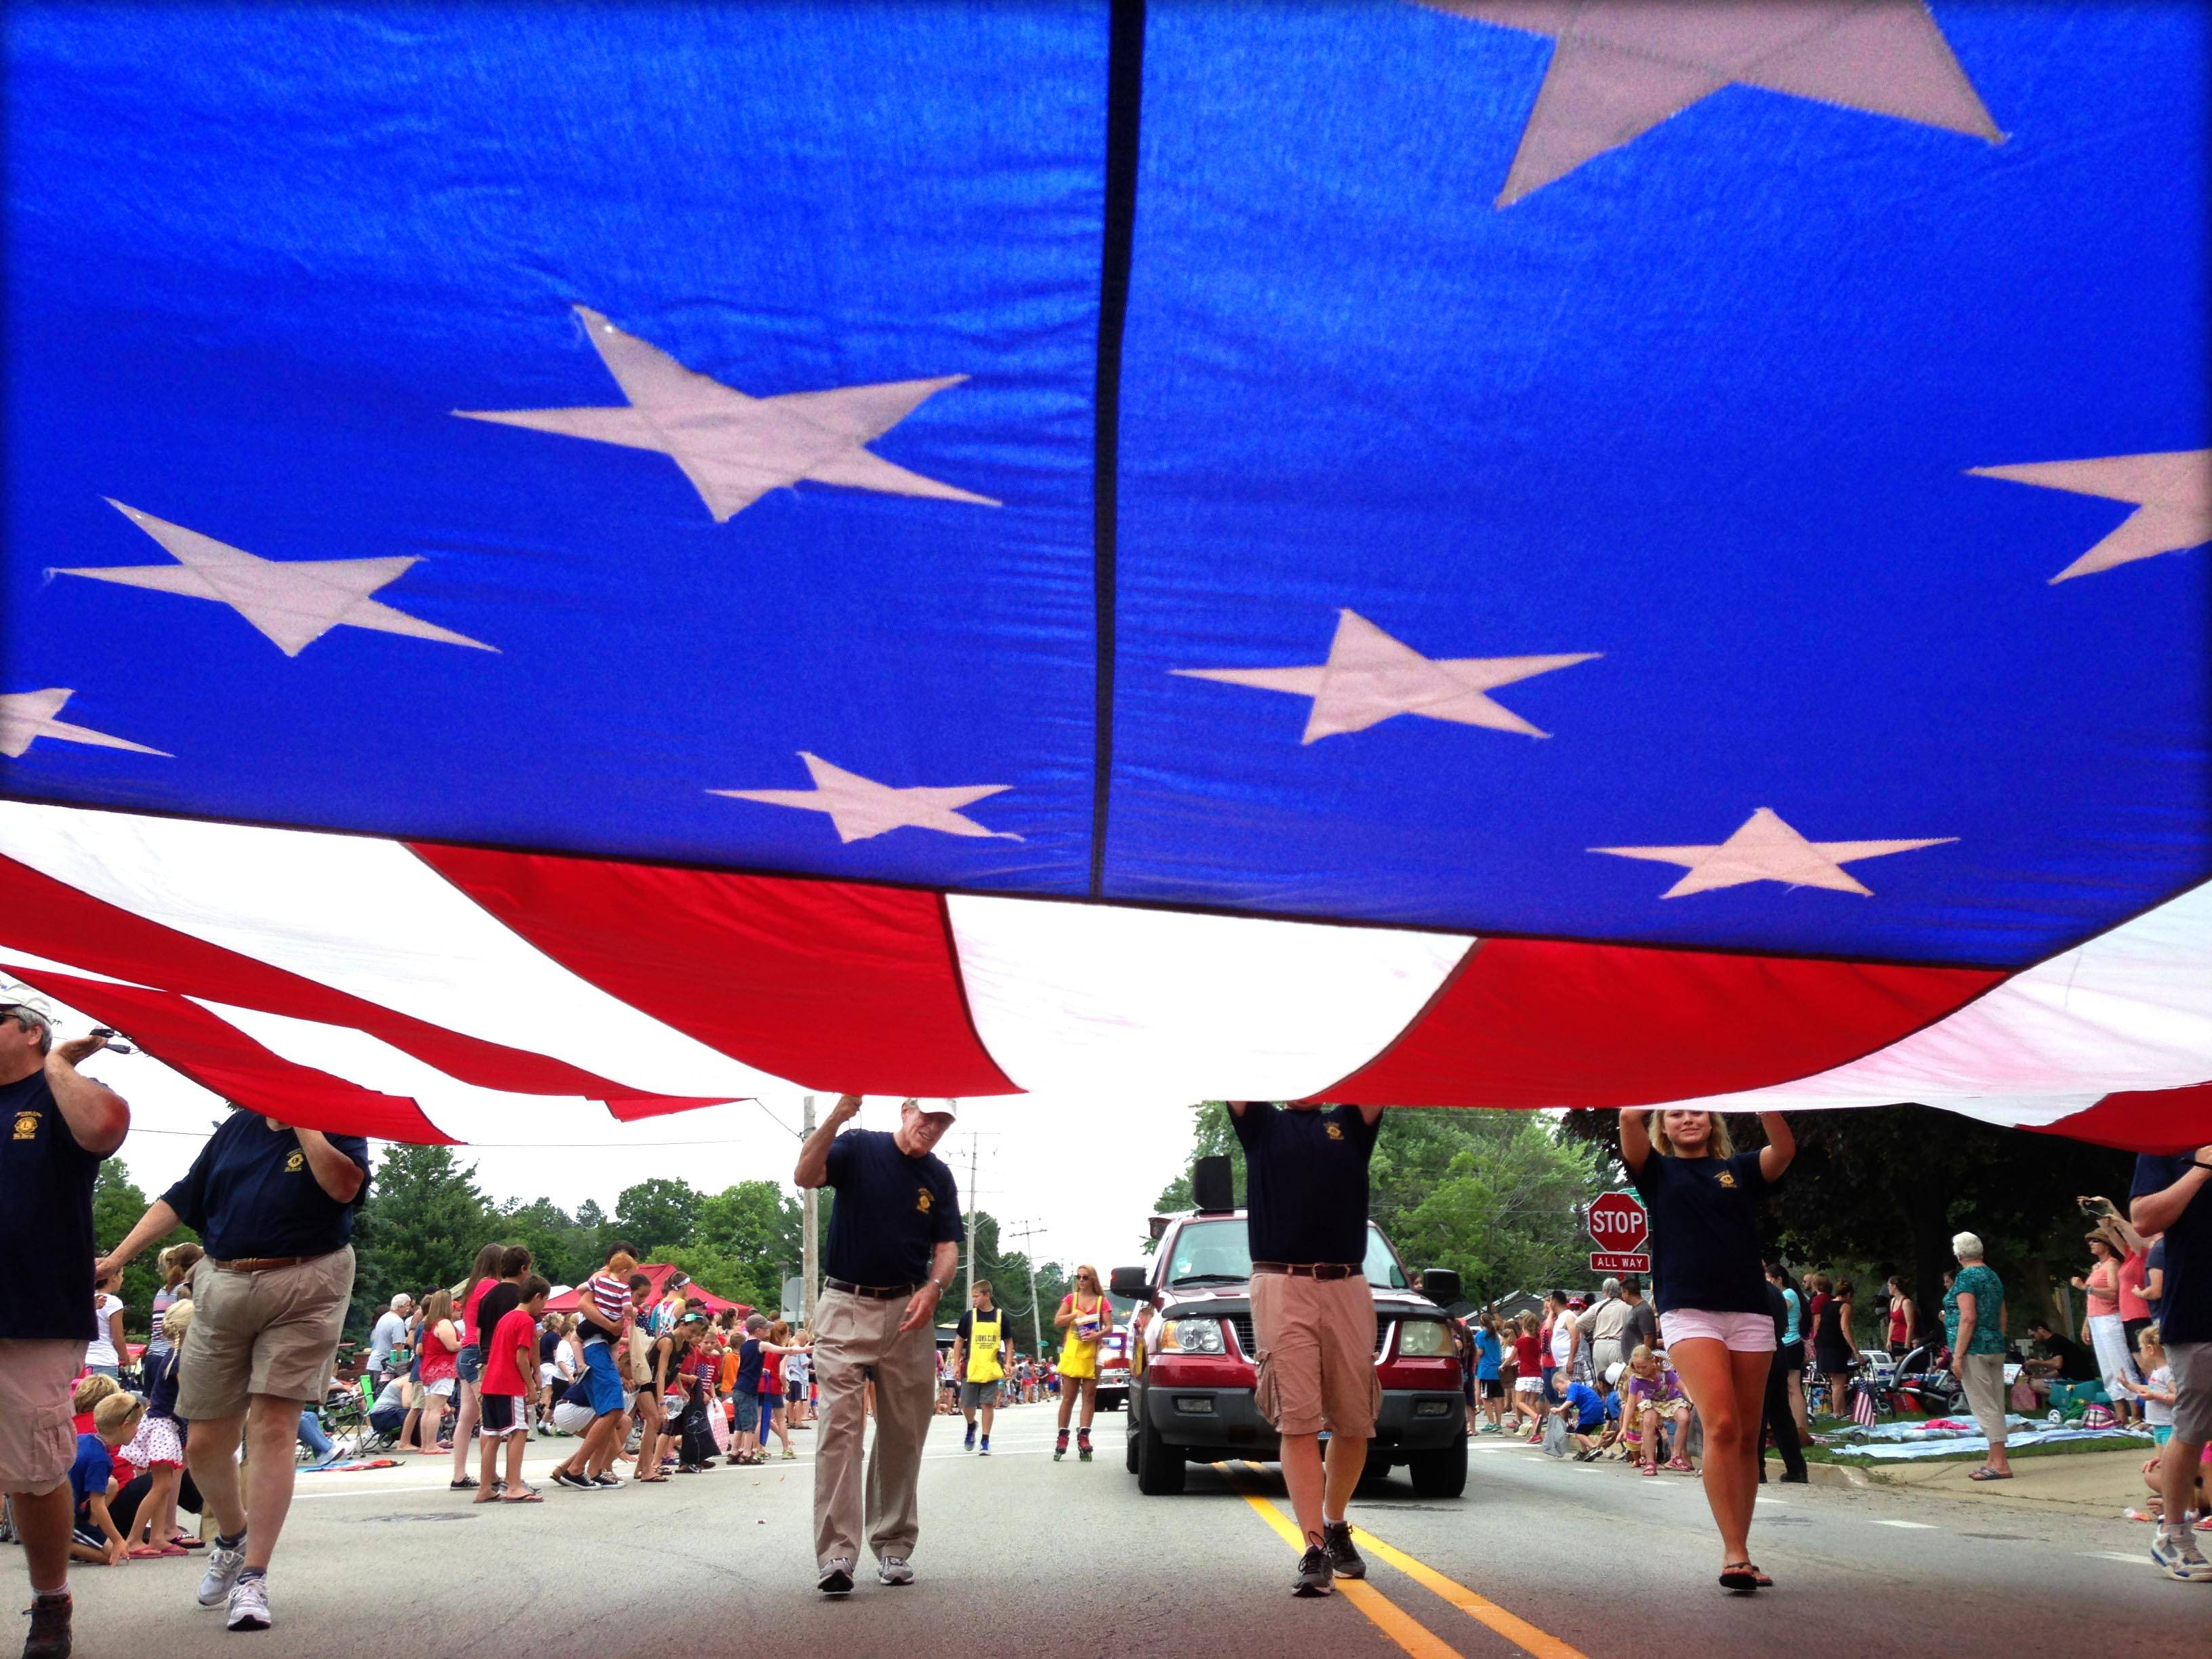 Lions Club members carry a large American flag during the Crystal Lake Fourth of July parade on Dole Avenue Sunday afternoon.